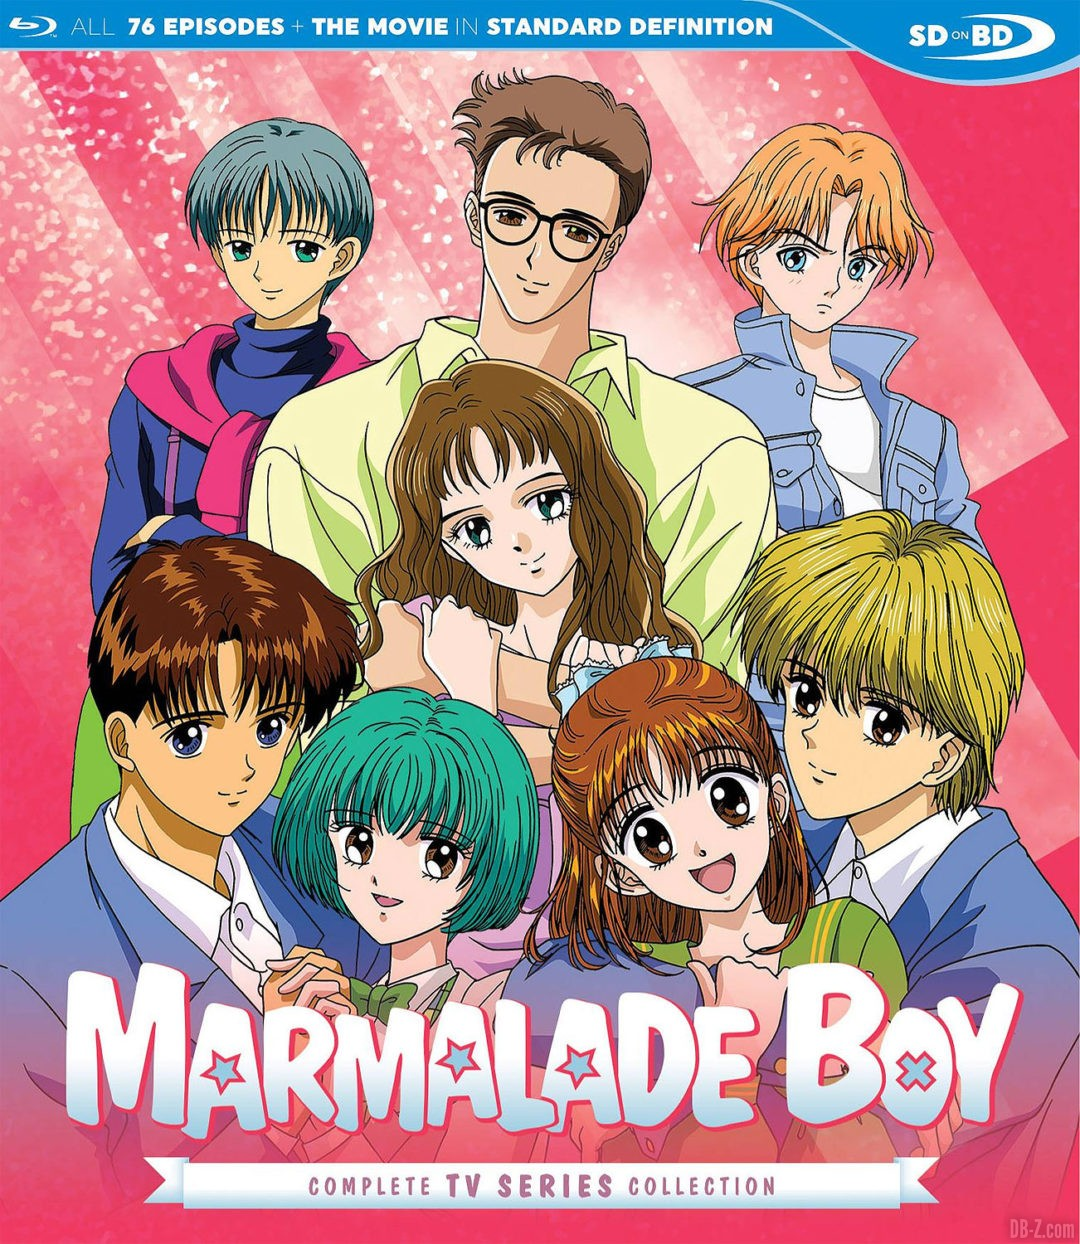 marmalade-boy-complete-collection-blu-ray